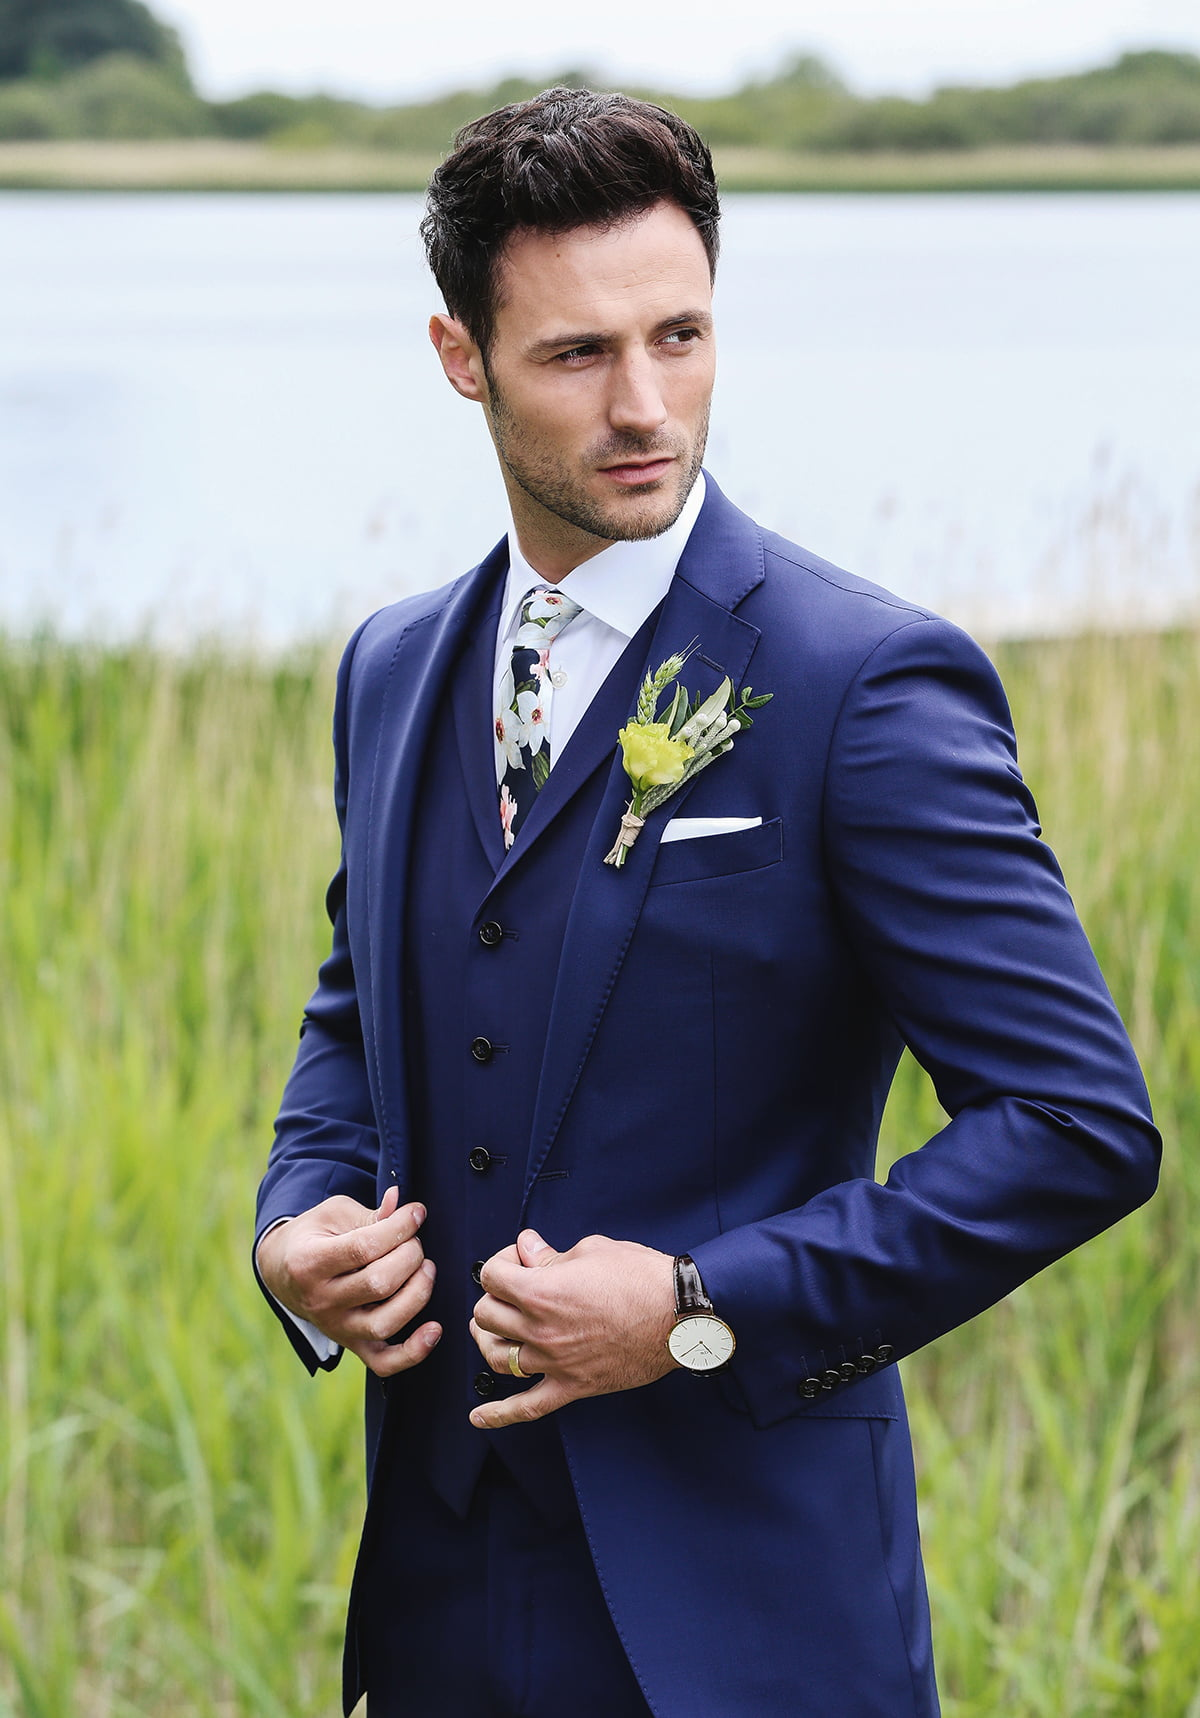 GROOM! - HOW TO LOOK YOUR BEST ON YOUR WEDDING DAY 2